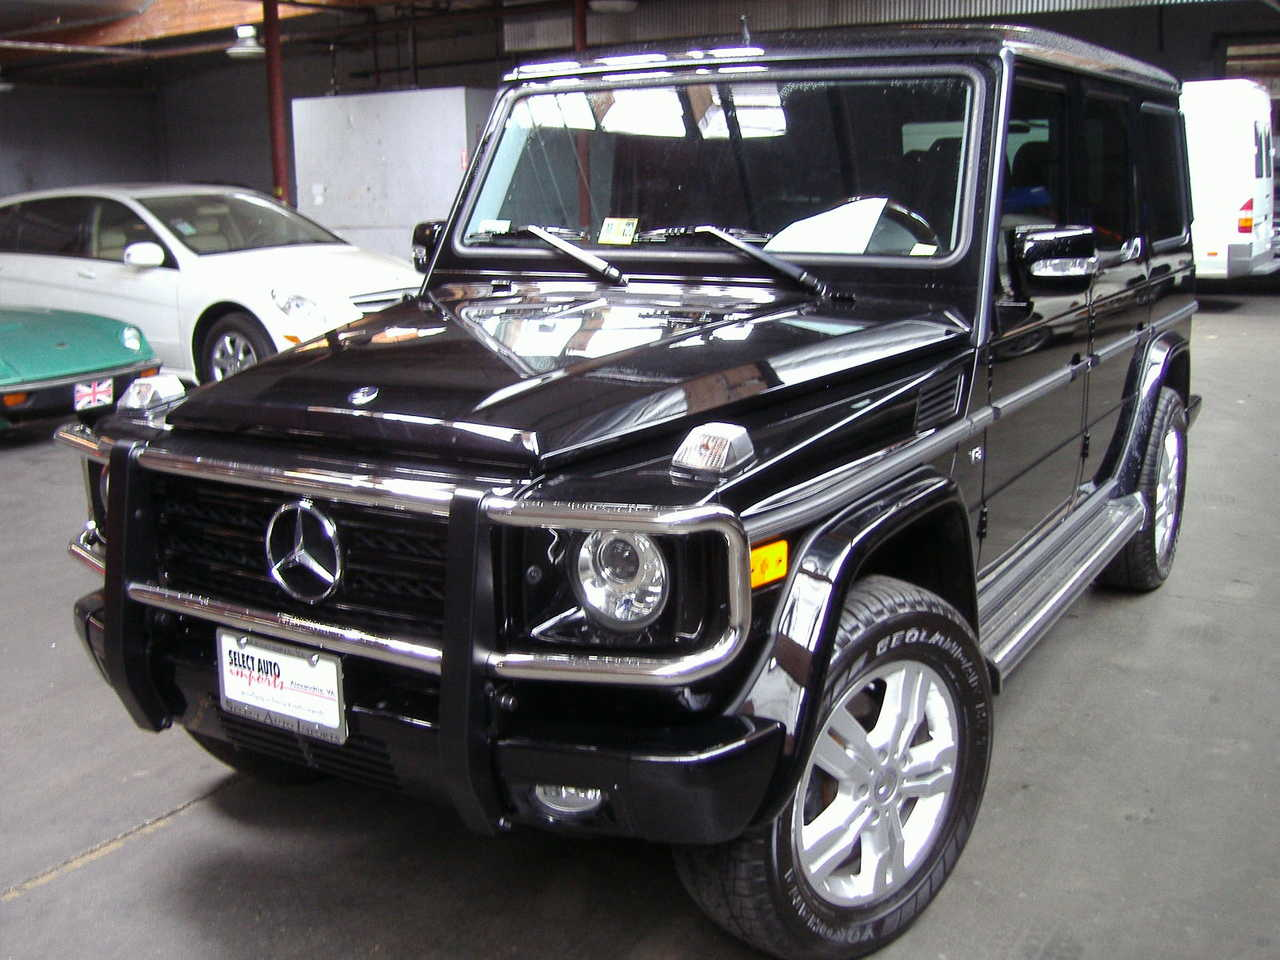 2010 mercedes benz g class photos 5 5 gasoline for Mercedes benz g class 2010 for sale